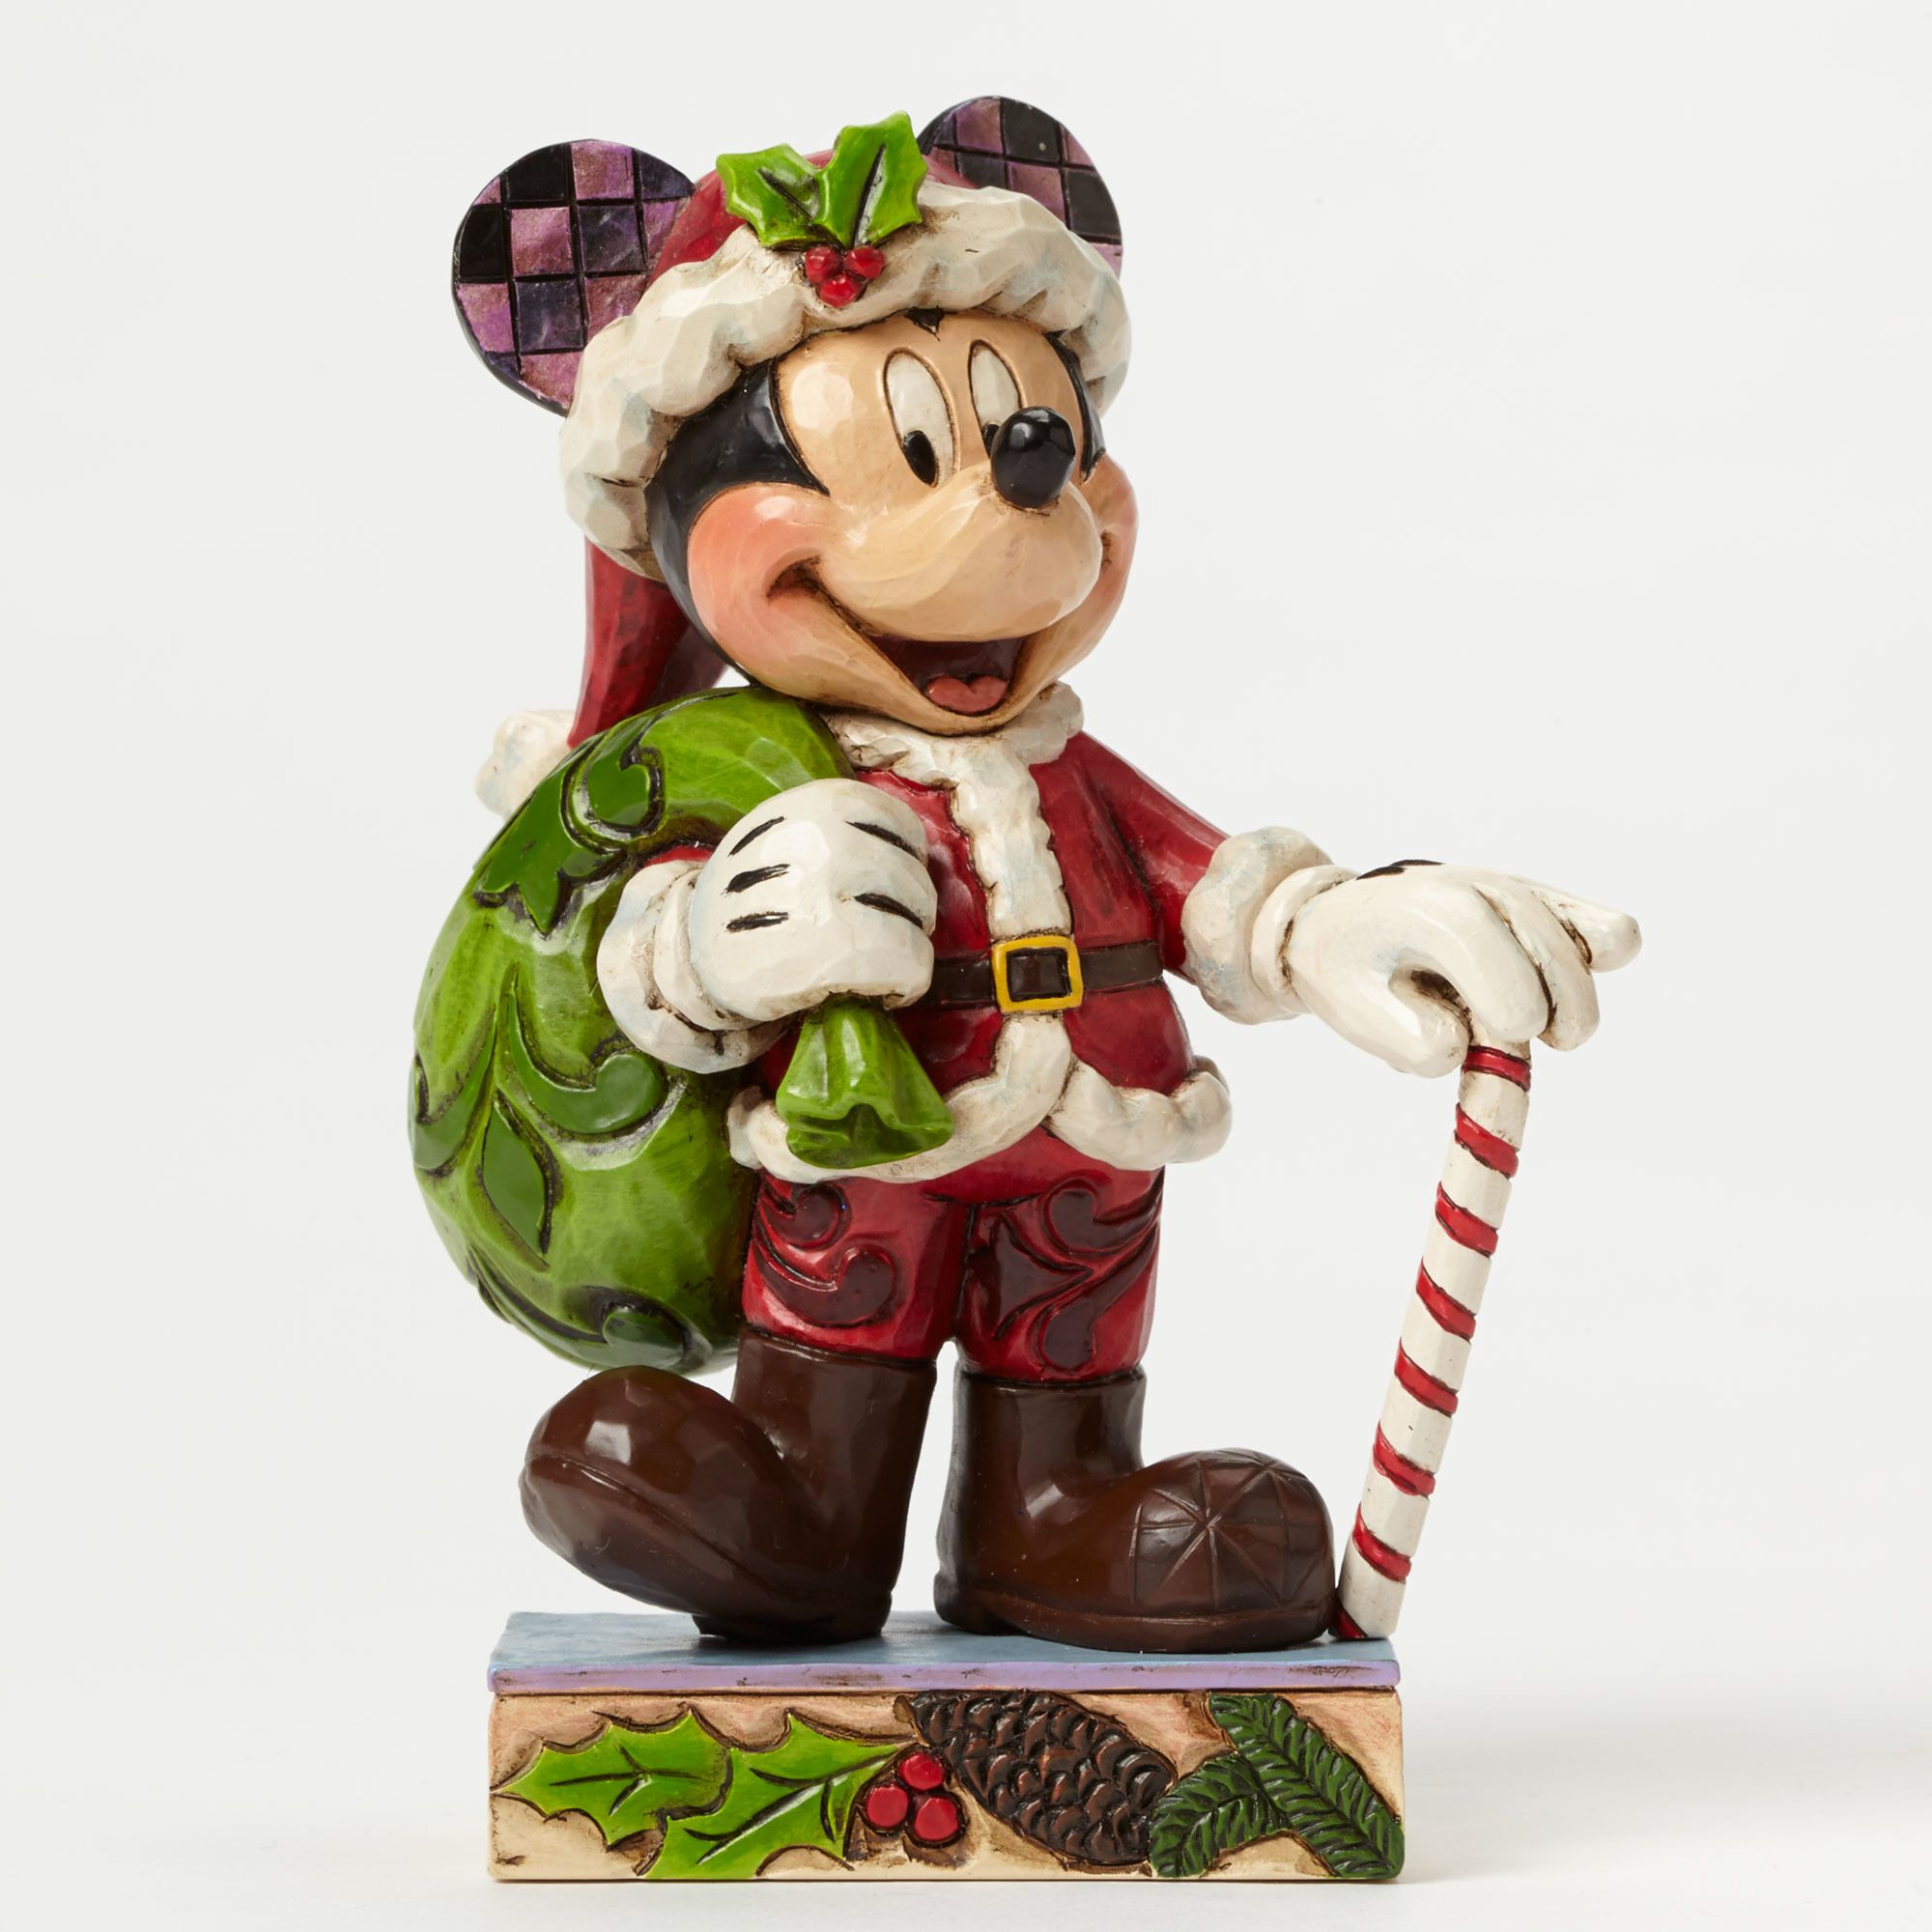 St. Mick stands ready for his big day in this colorful new Personality Pose from the artistry of Jim Shore. Beautifully handcrafted, this smaller size design adds a festive touch of Disney to any holiday display.